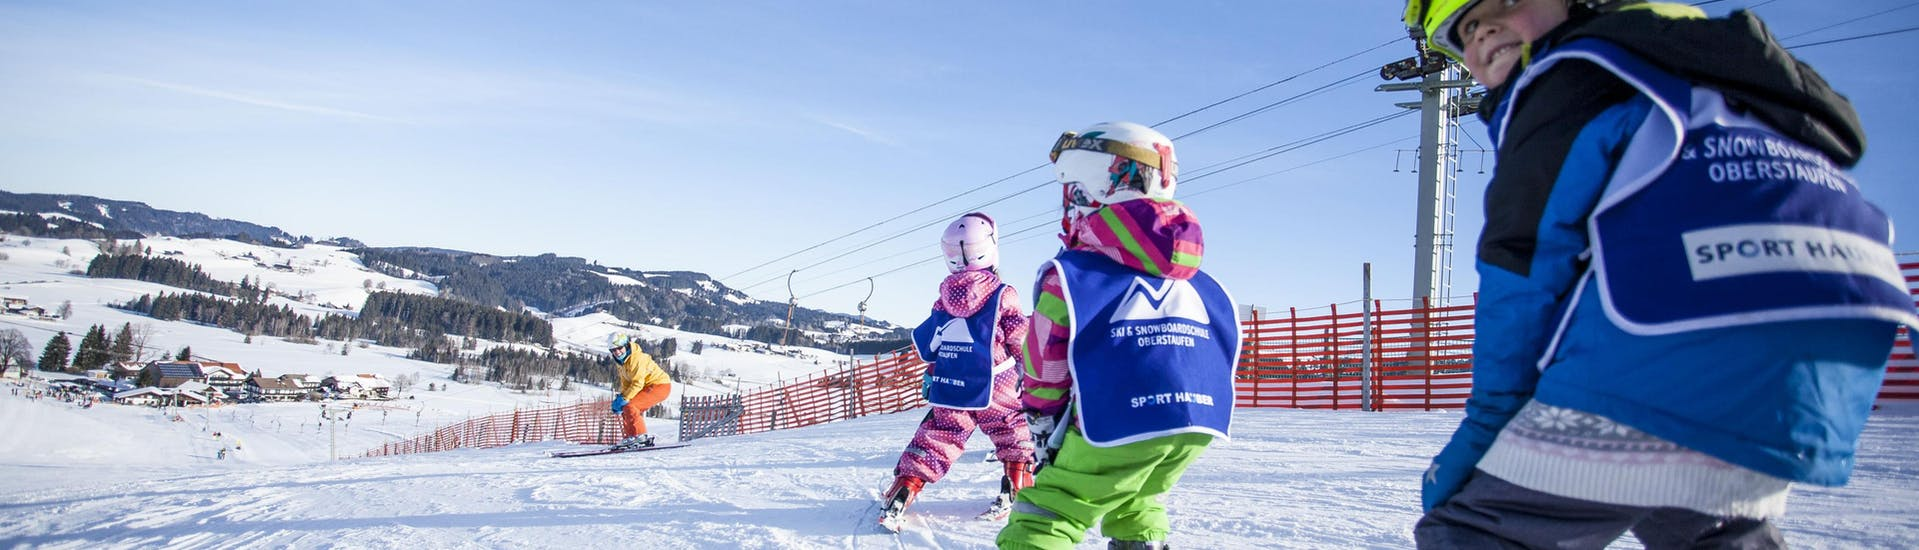 Hundle Thalkirchdorf Kids Ski Lessons 5 15 Years On Hundle All Levels From 39 Checkyeti